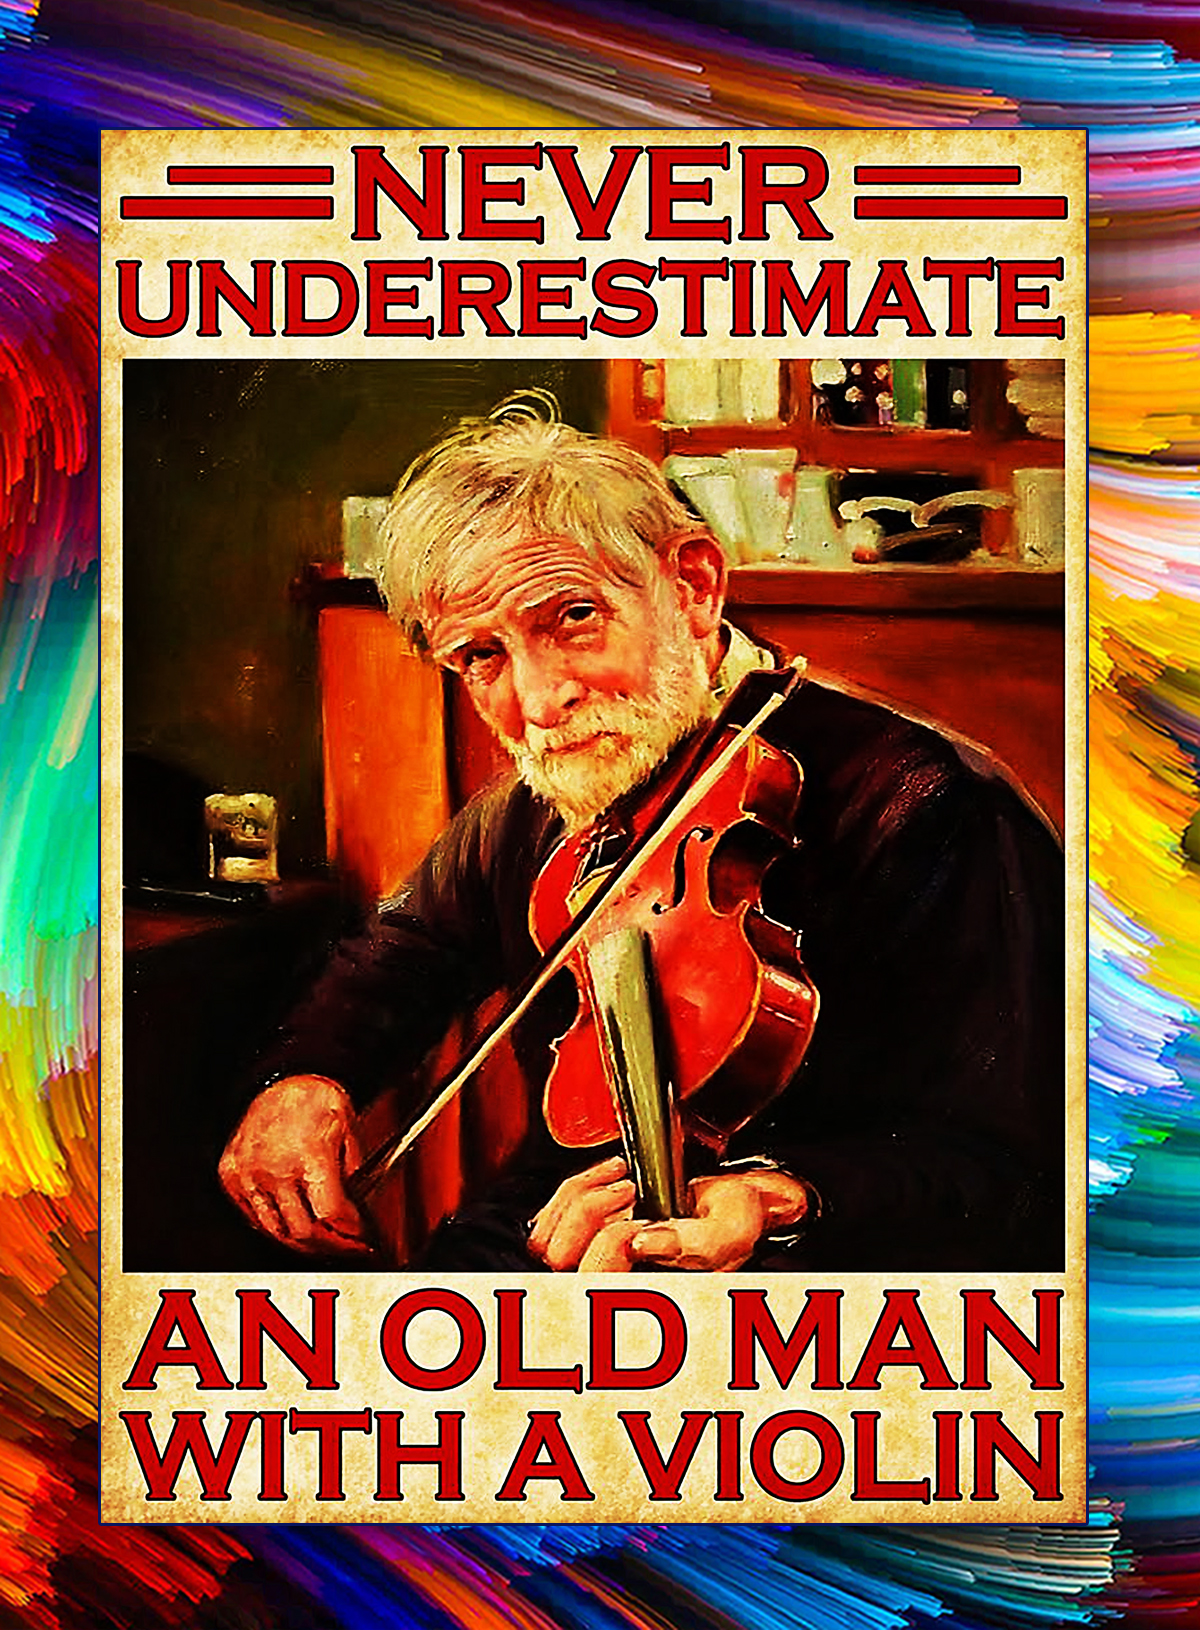 Never underestimate an old man with a violin poster - A4